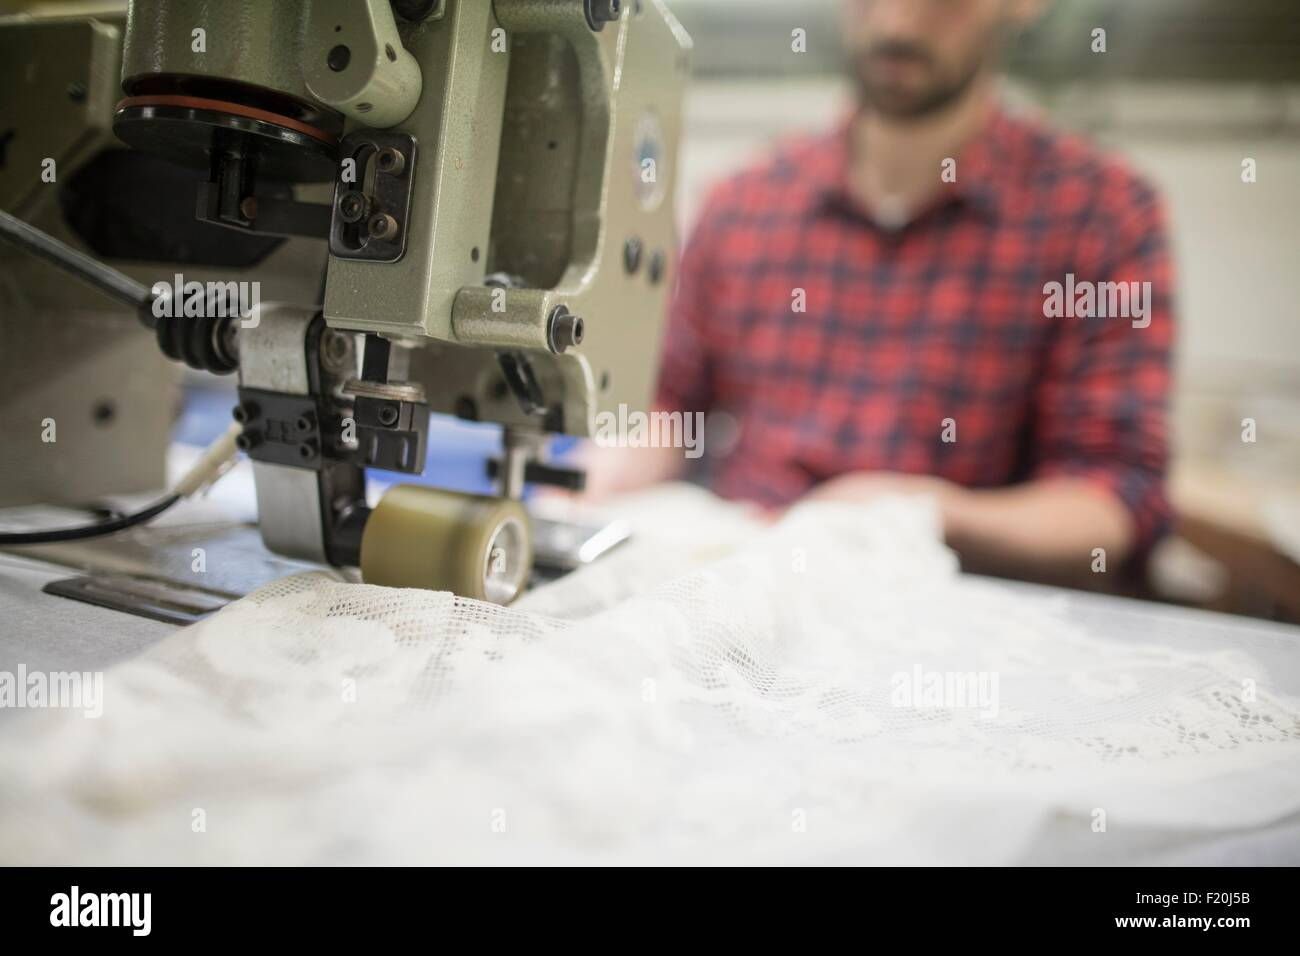 Male weaver sewing lace on sewing machine in old textile mill - Stock Image